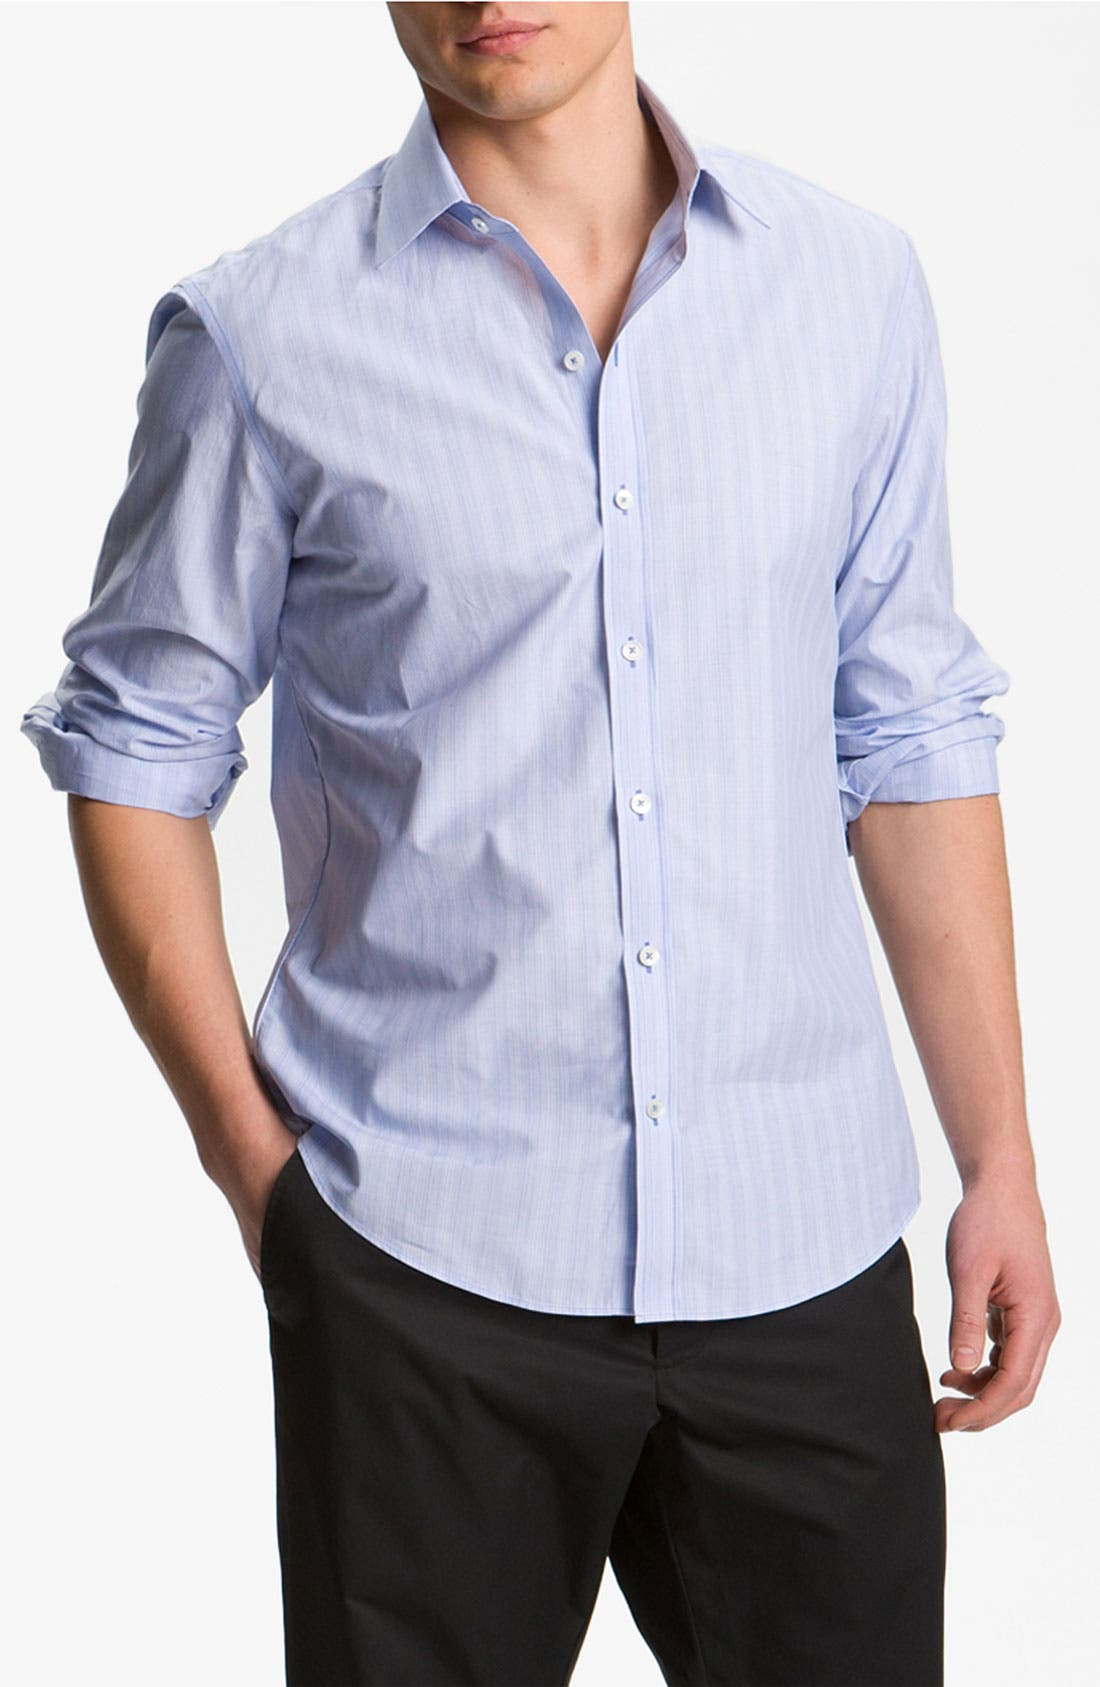 Main Image - Zachary Prell Slim Fit Sport Shirt